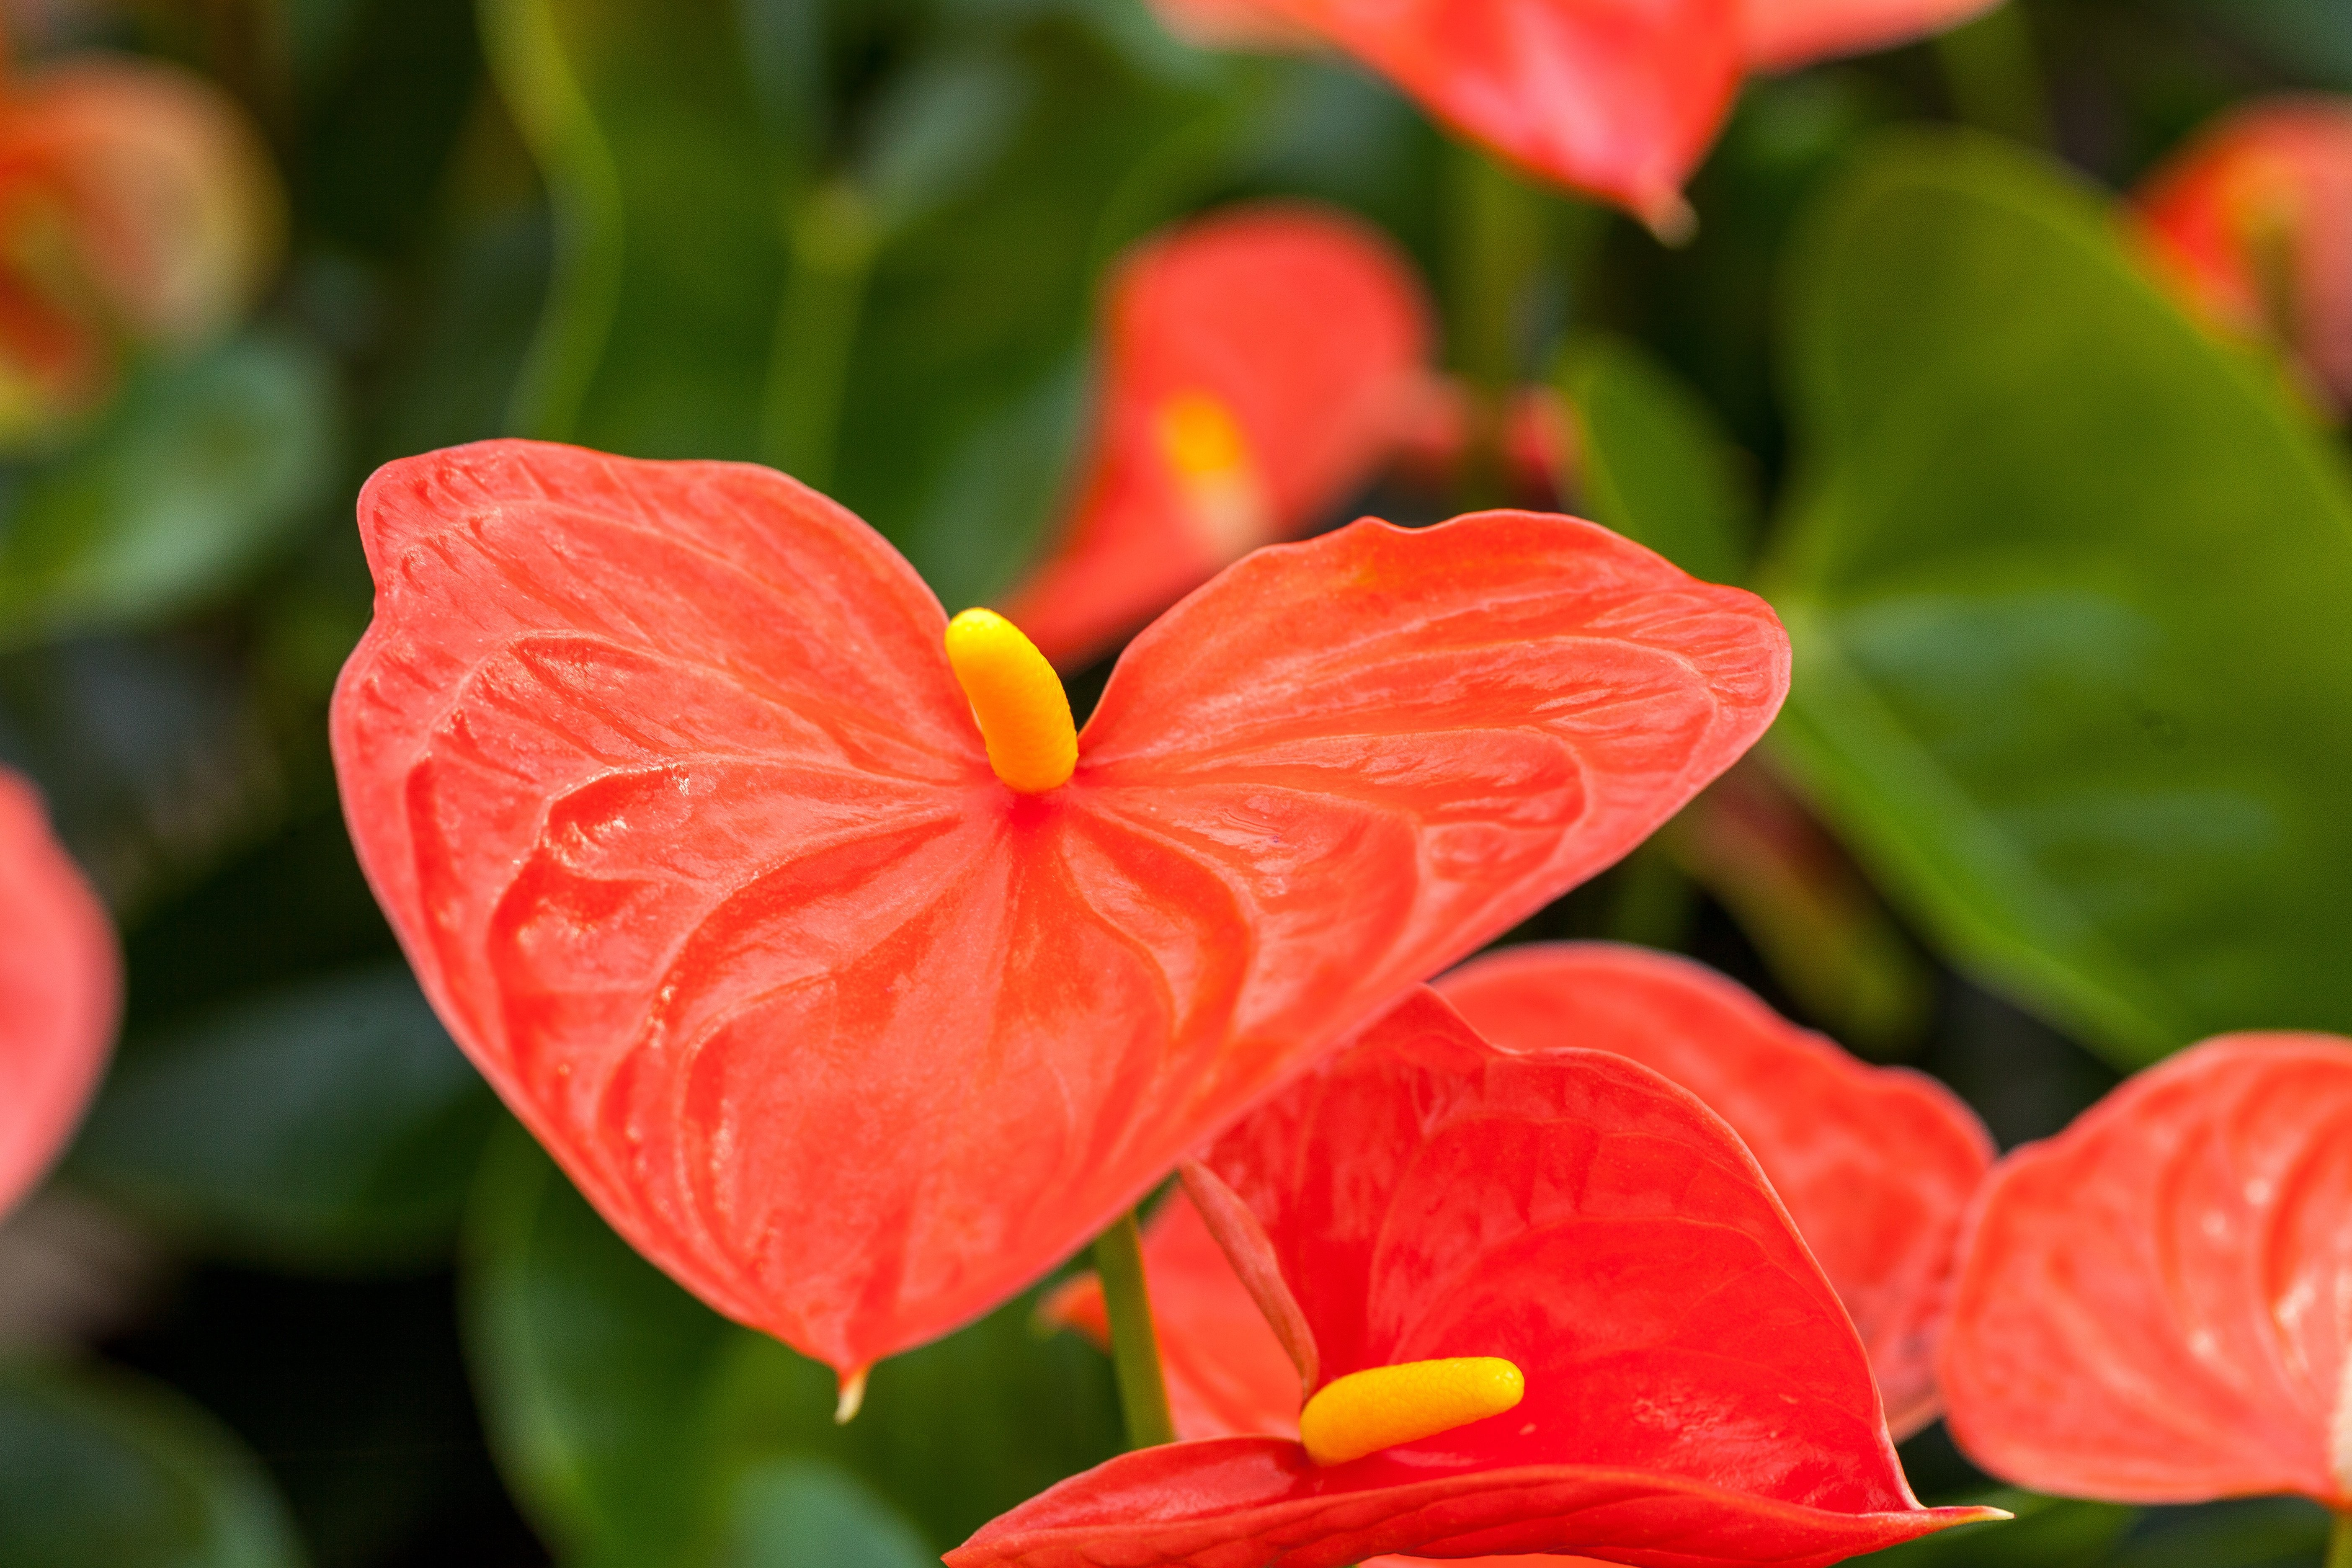 6 Fascinating Facts About the Anthurium Plant